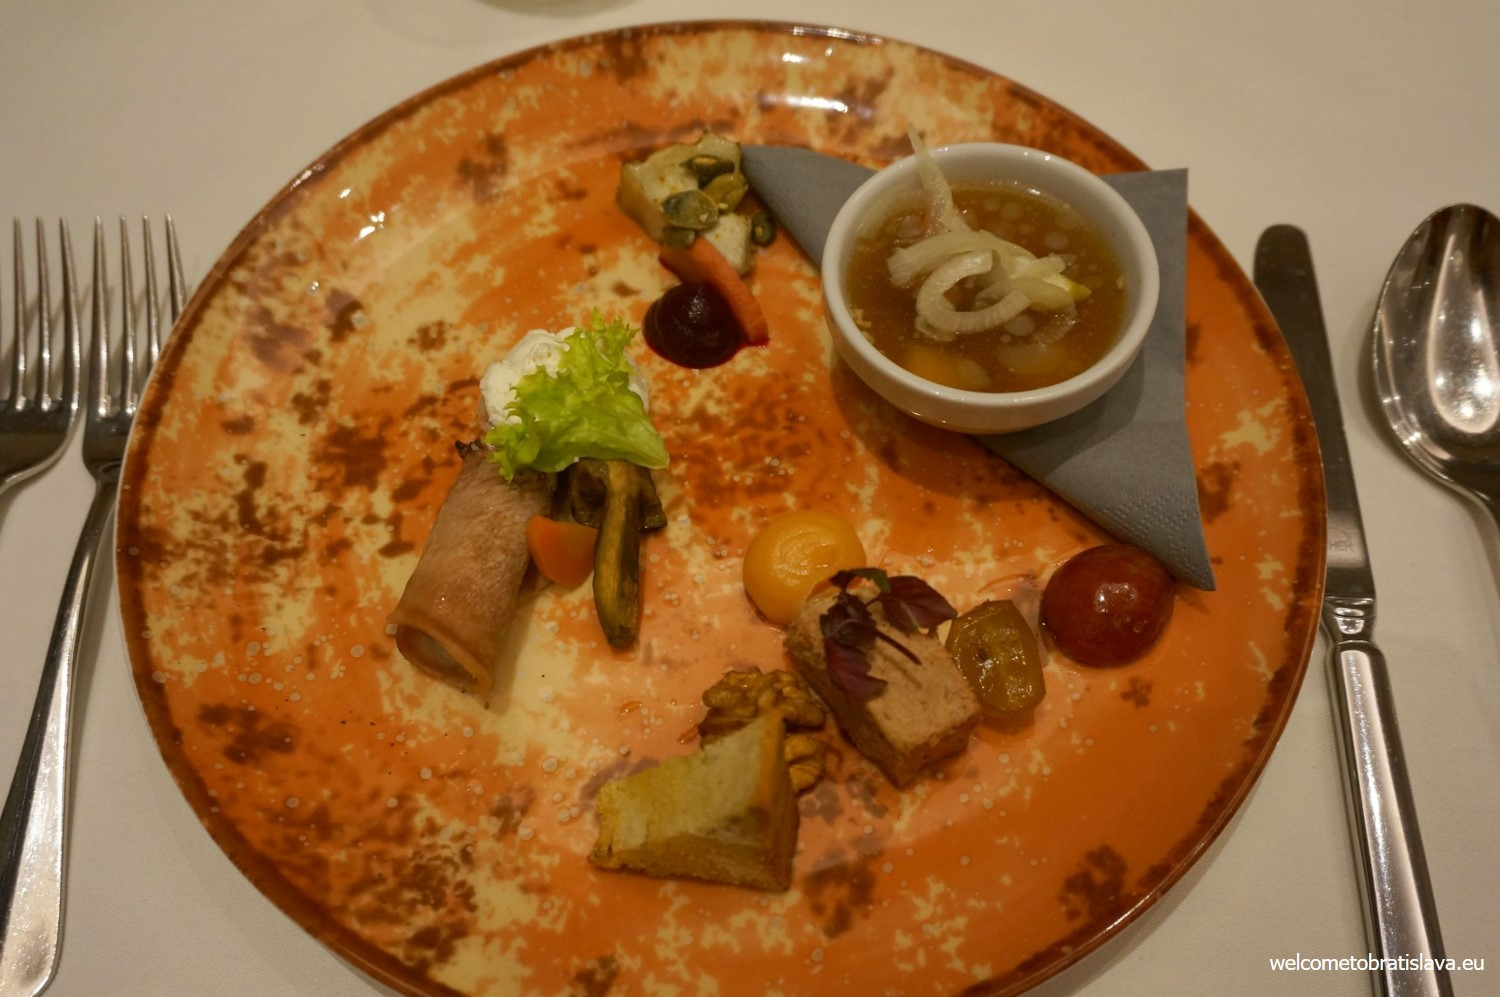 A cold veal and pork jelly served in a soup bowl with vinegar and onion